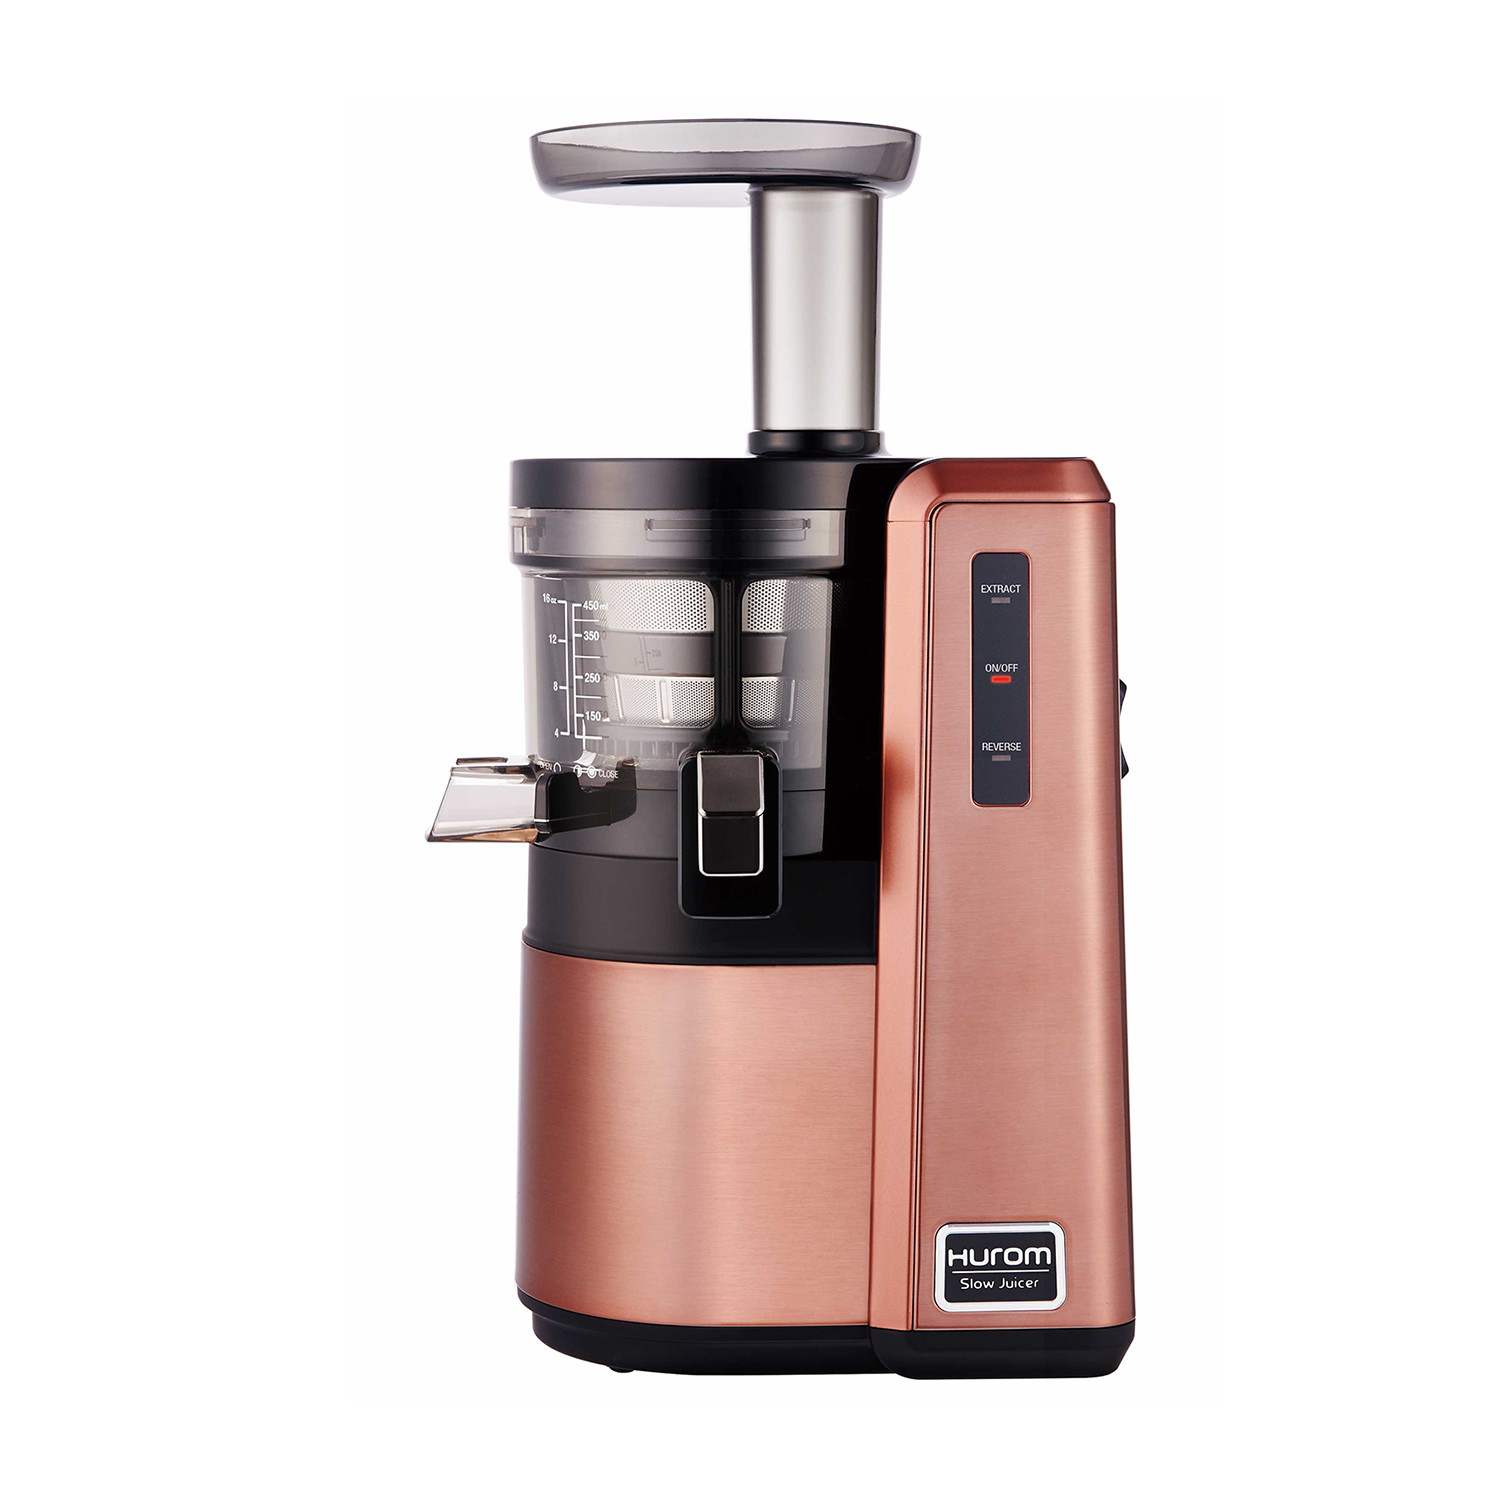 Hurom Hz Slow Juicer Silver : Hurom HZ Slow Juicer + Juice Jar (Silver) - Hurom - Touch of Modern